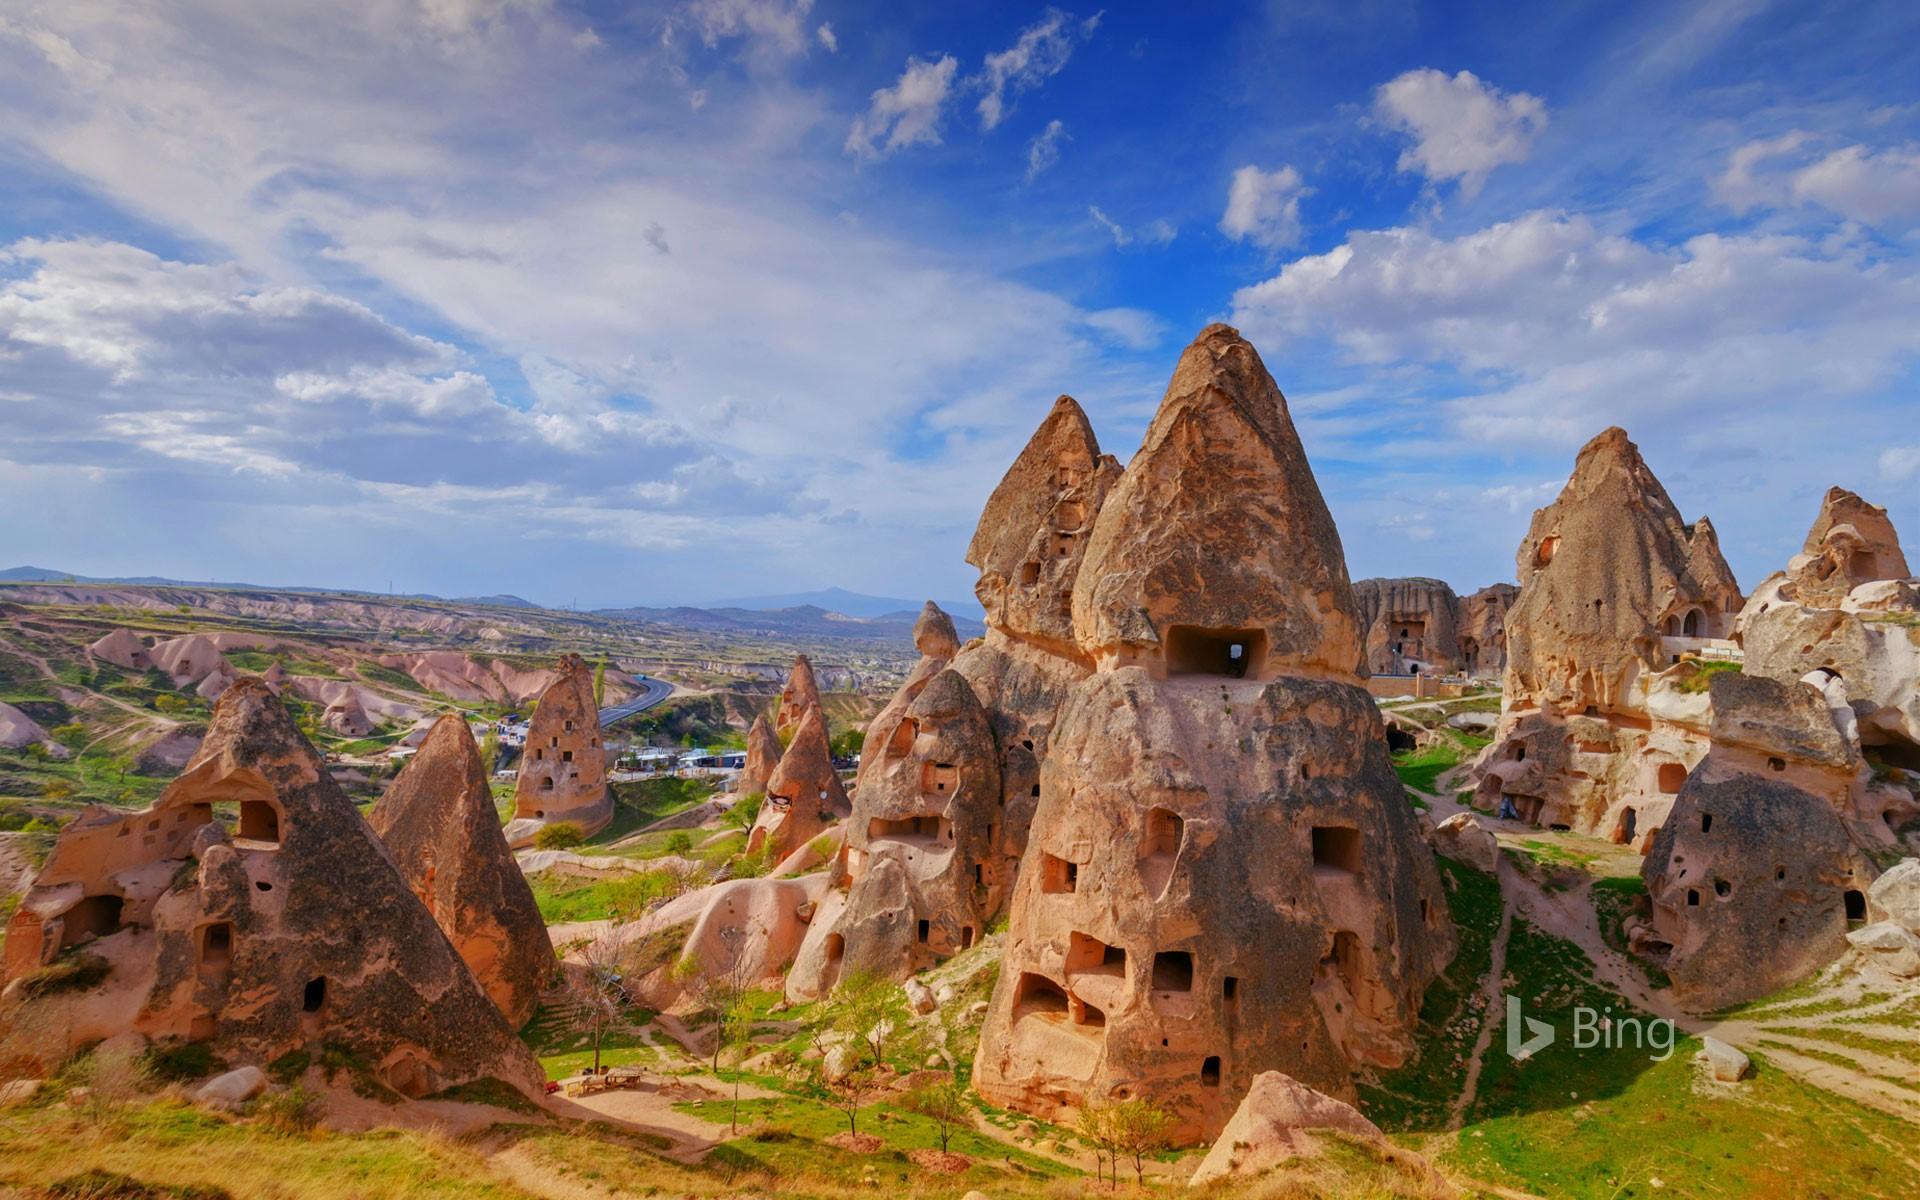 Fairy chimneys and cave dwellings in Uçhisar, Cappadocia, Turkey